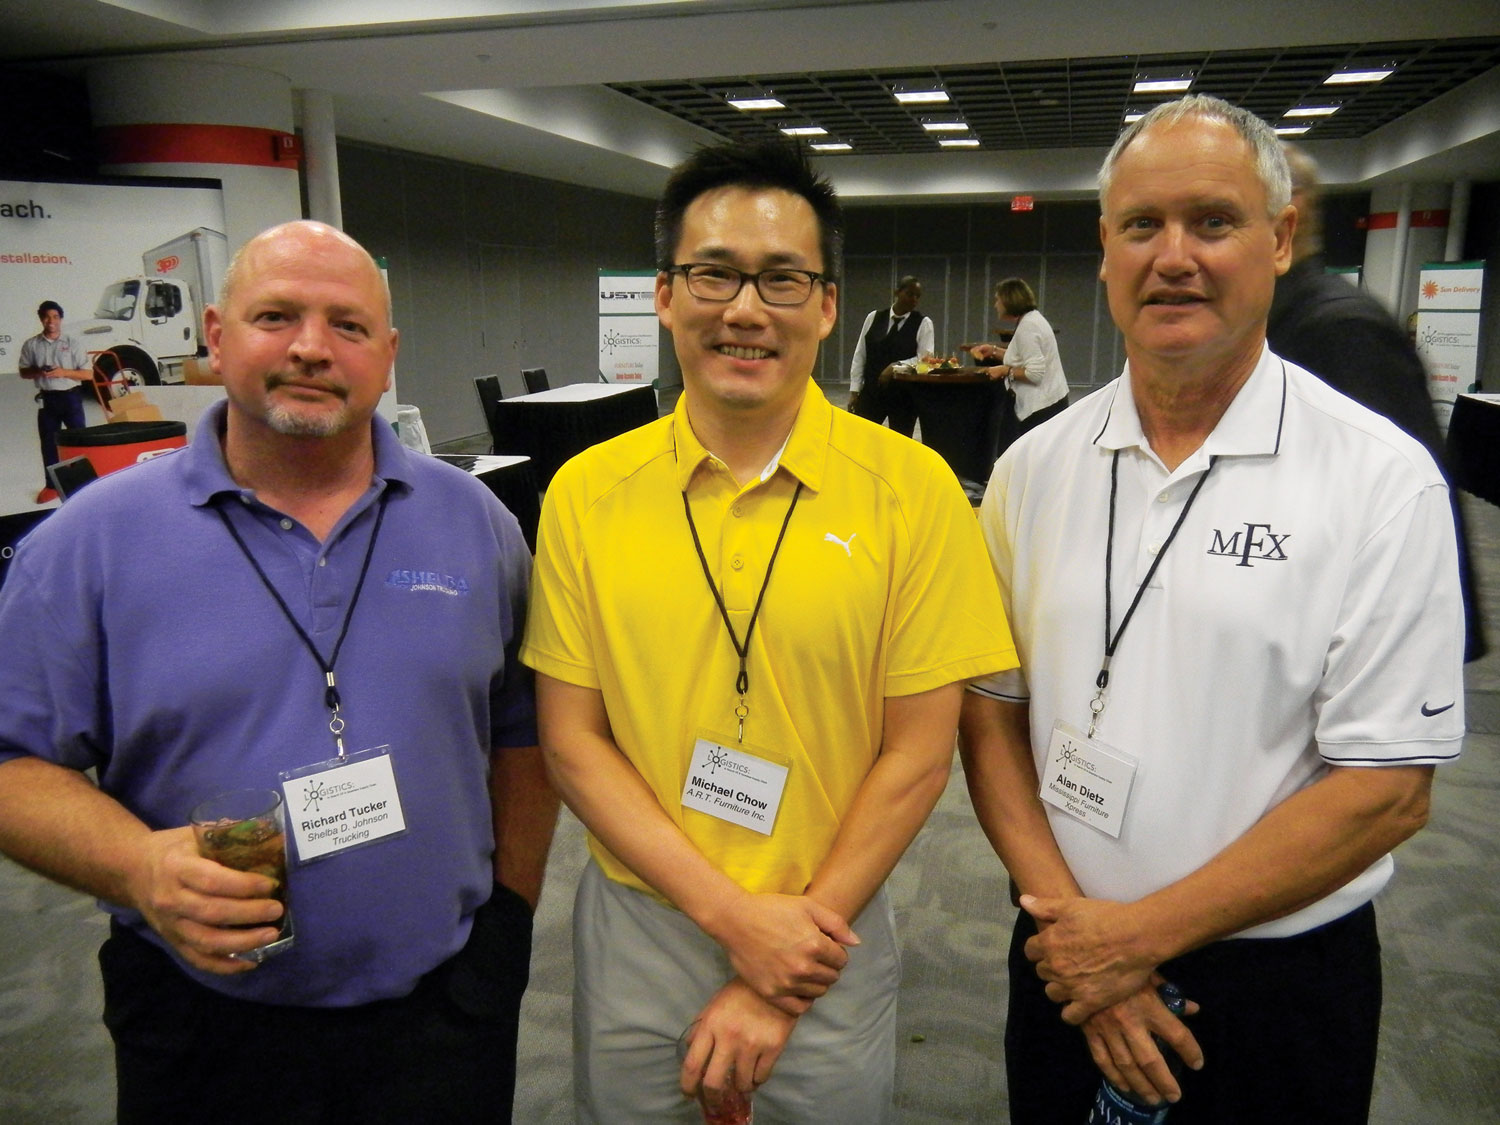 Richard Tucker, left, Shelba D. Johnson Trucking; Michael Chow, A.R.T. Furniture; Alan Dietz, Mississippi Furniture Xpress.